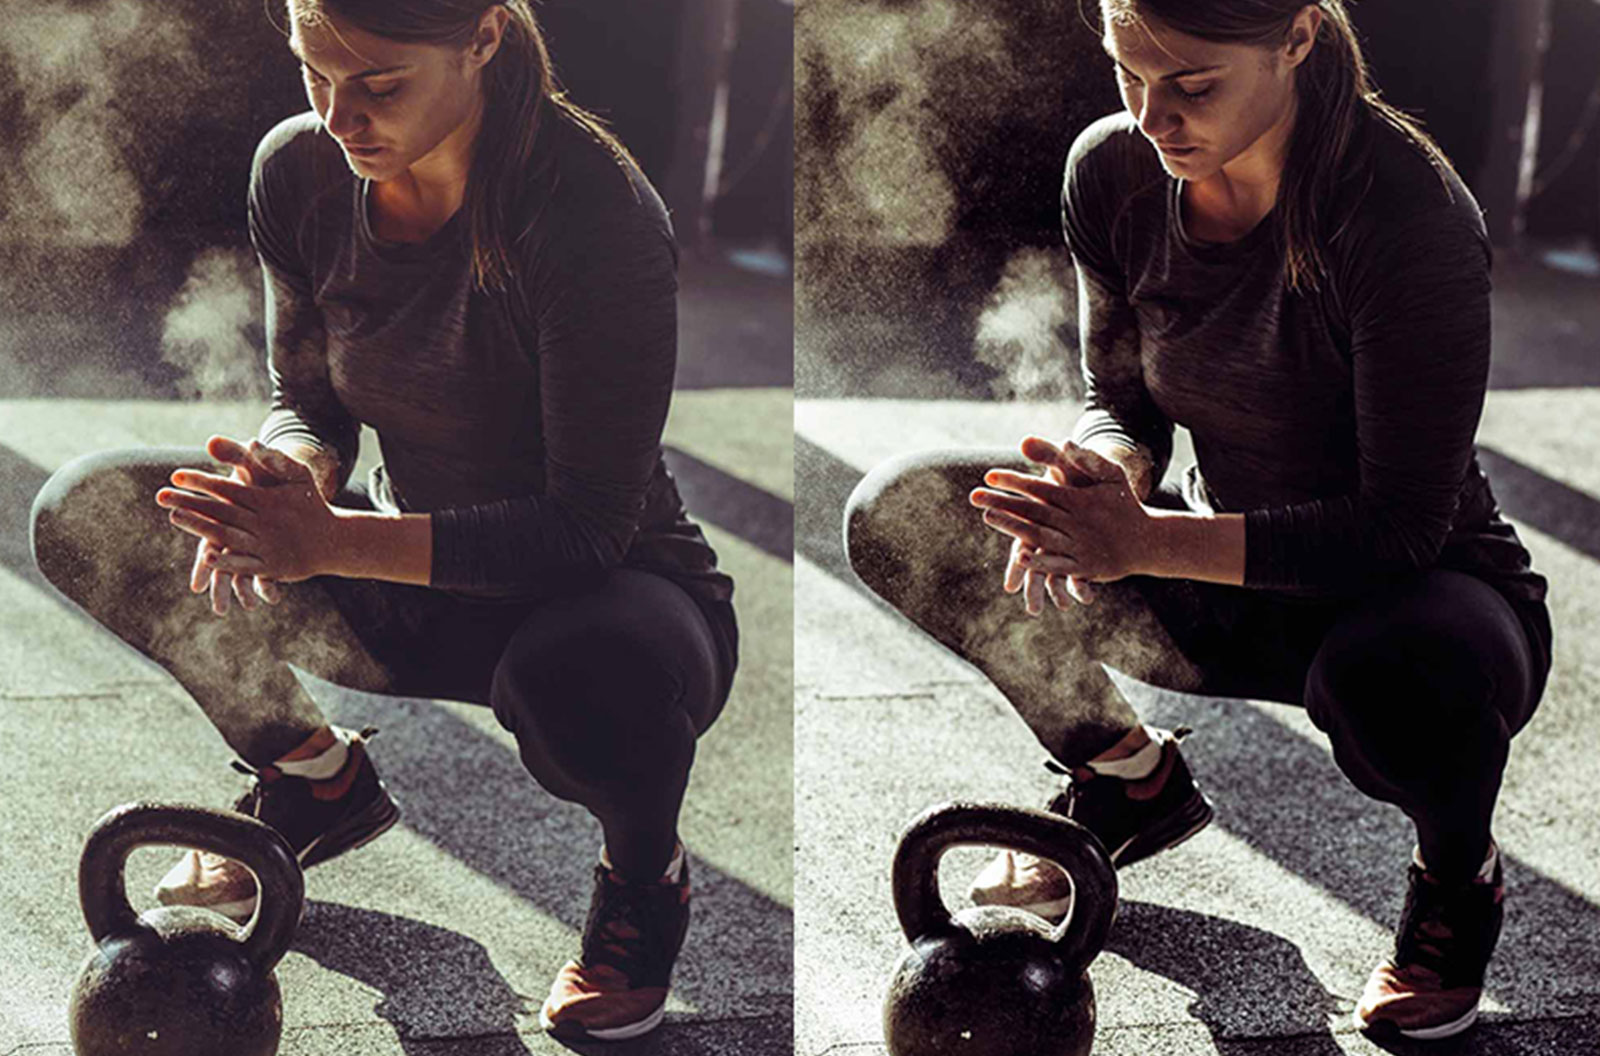 Side by side image comparisons of a fit woman rubbing chalk on her hands to illustrate different shadow and highlight settings